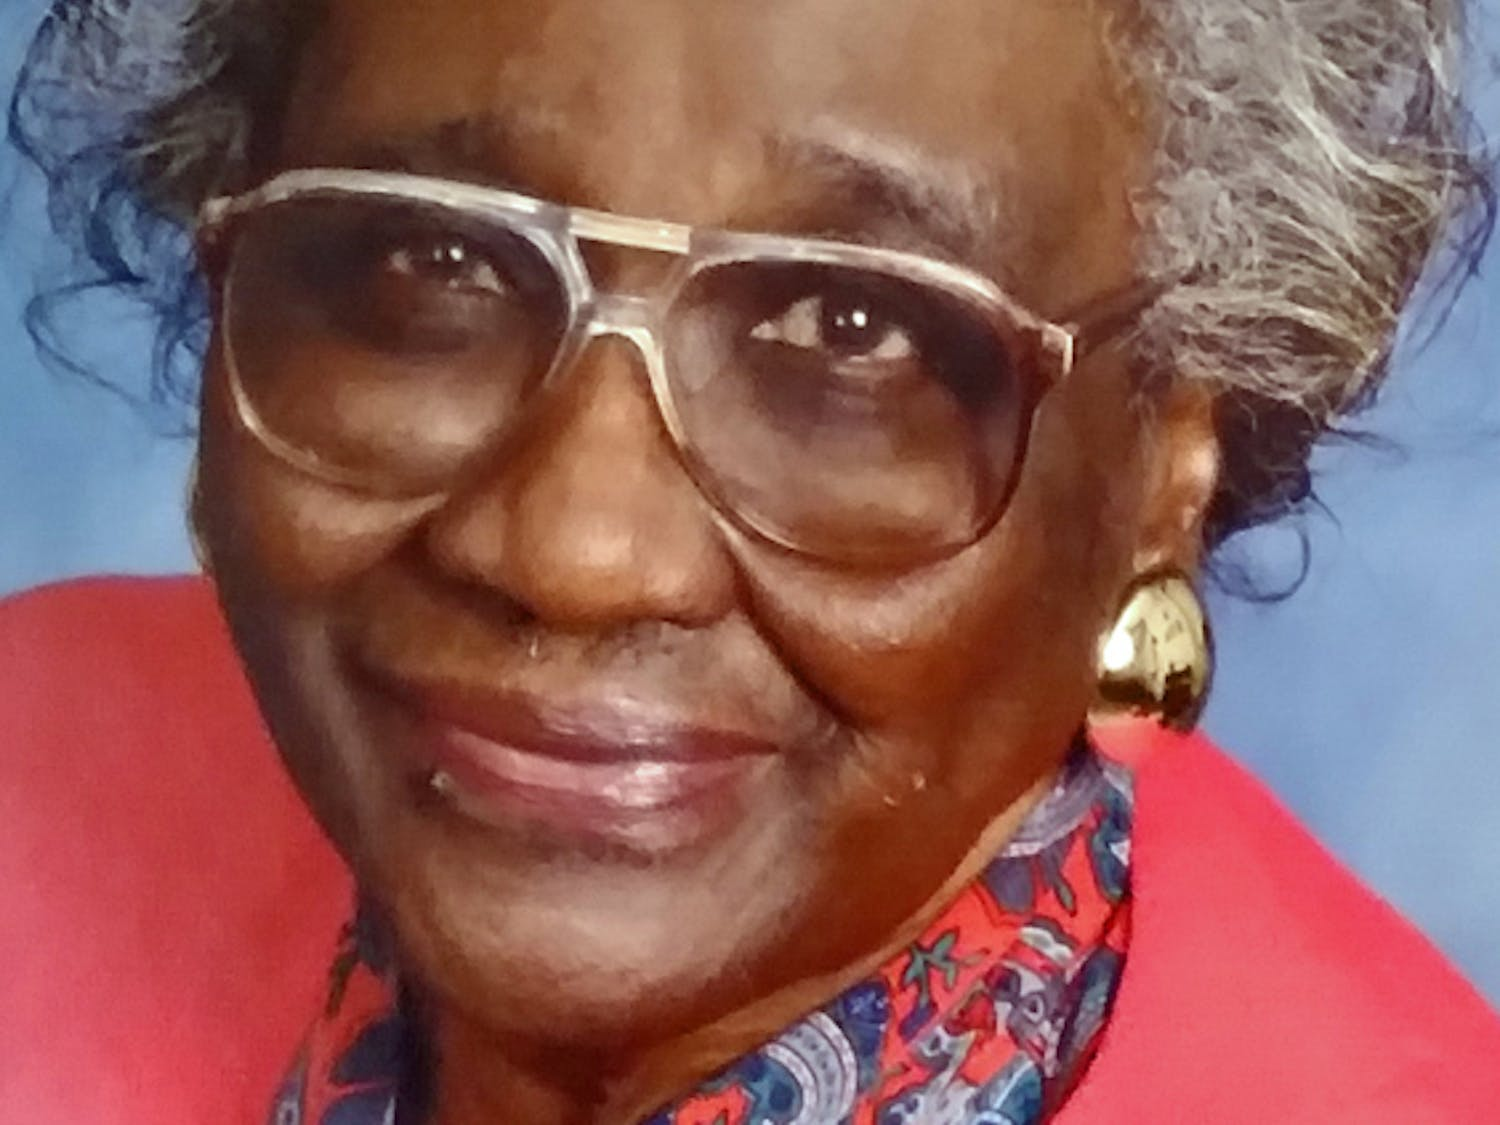 Gwendella G. Clemons passed away on May 11, 2021 and will be remembered for her work to desegregate Chapel Hill High School in 1966 and her service as the assistant principal at Chapel Hill High School. Photo courtesy of Fisher Memorial Funeral Parlor.